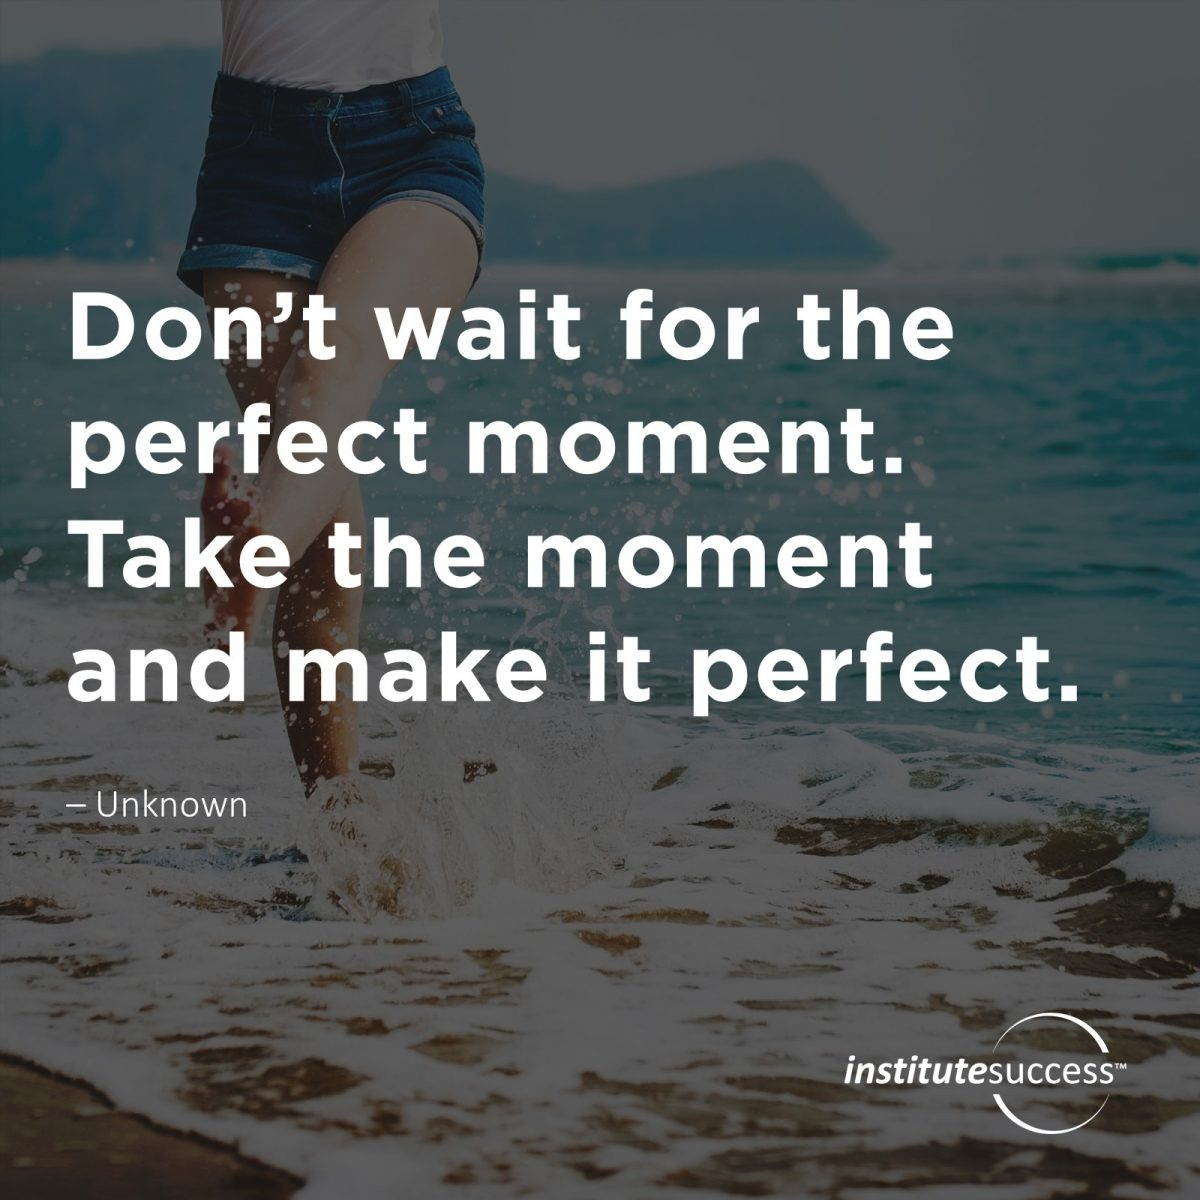 Don't wait for the perfect moment. Take the moment and make it perfect. – Unknown